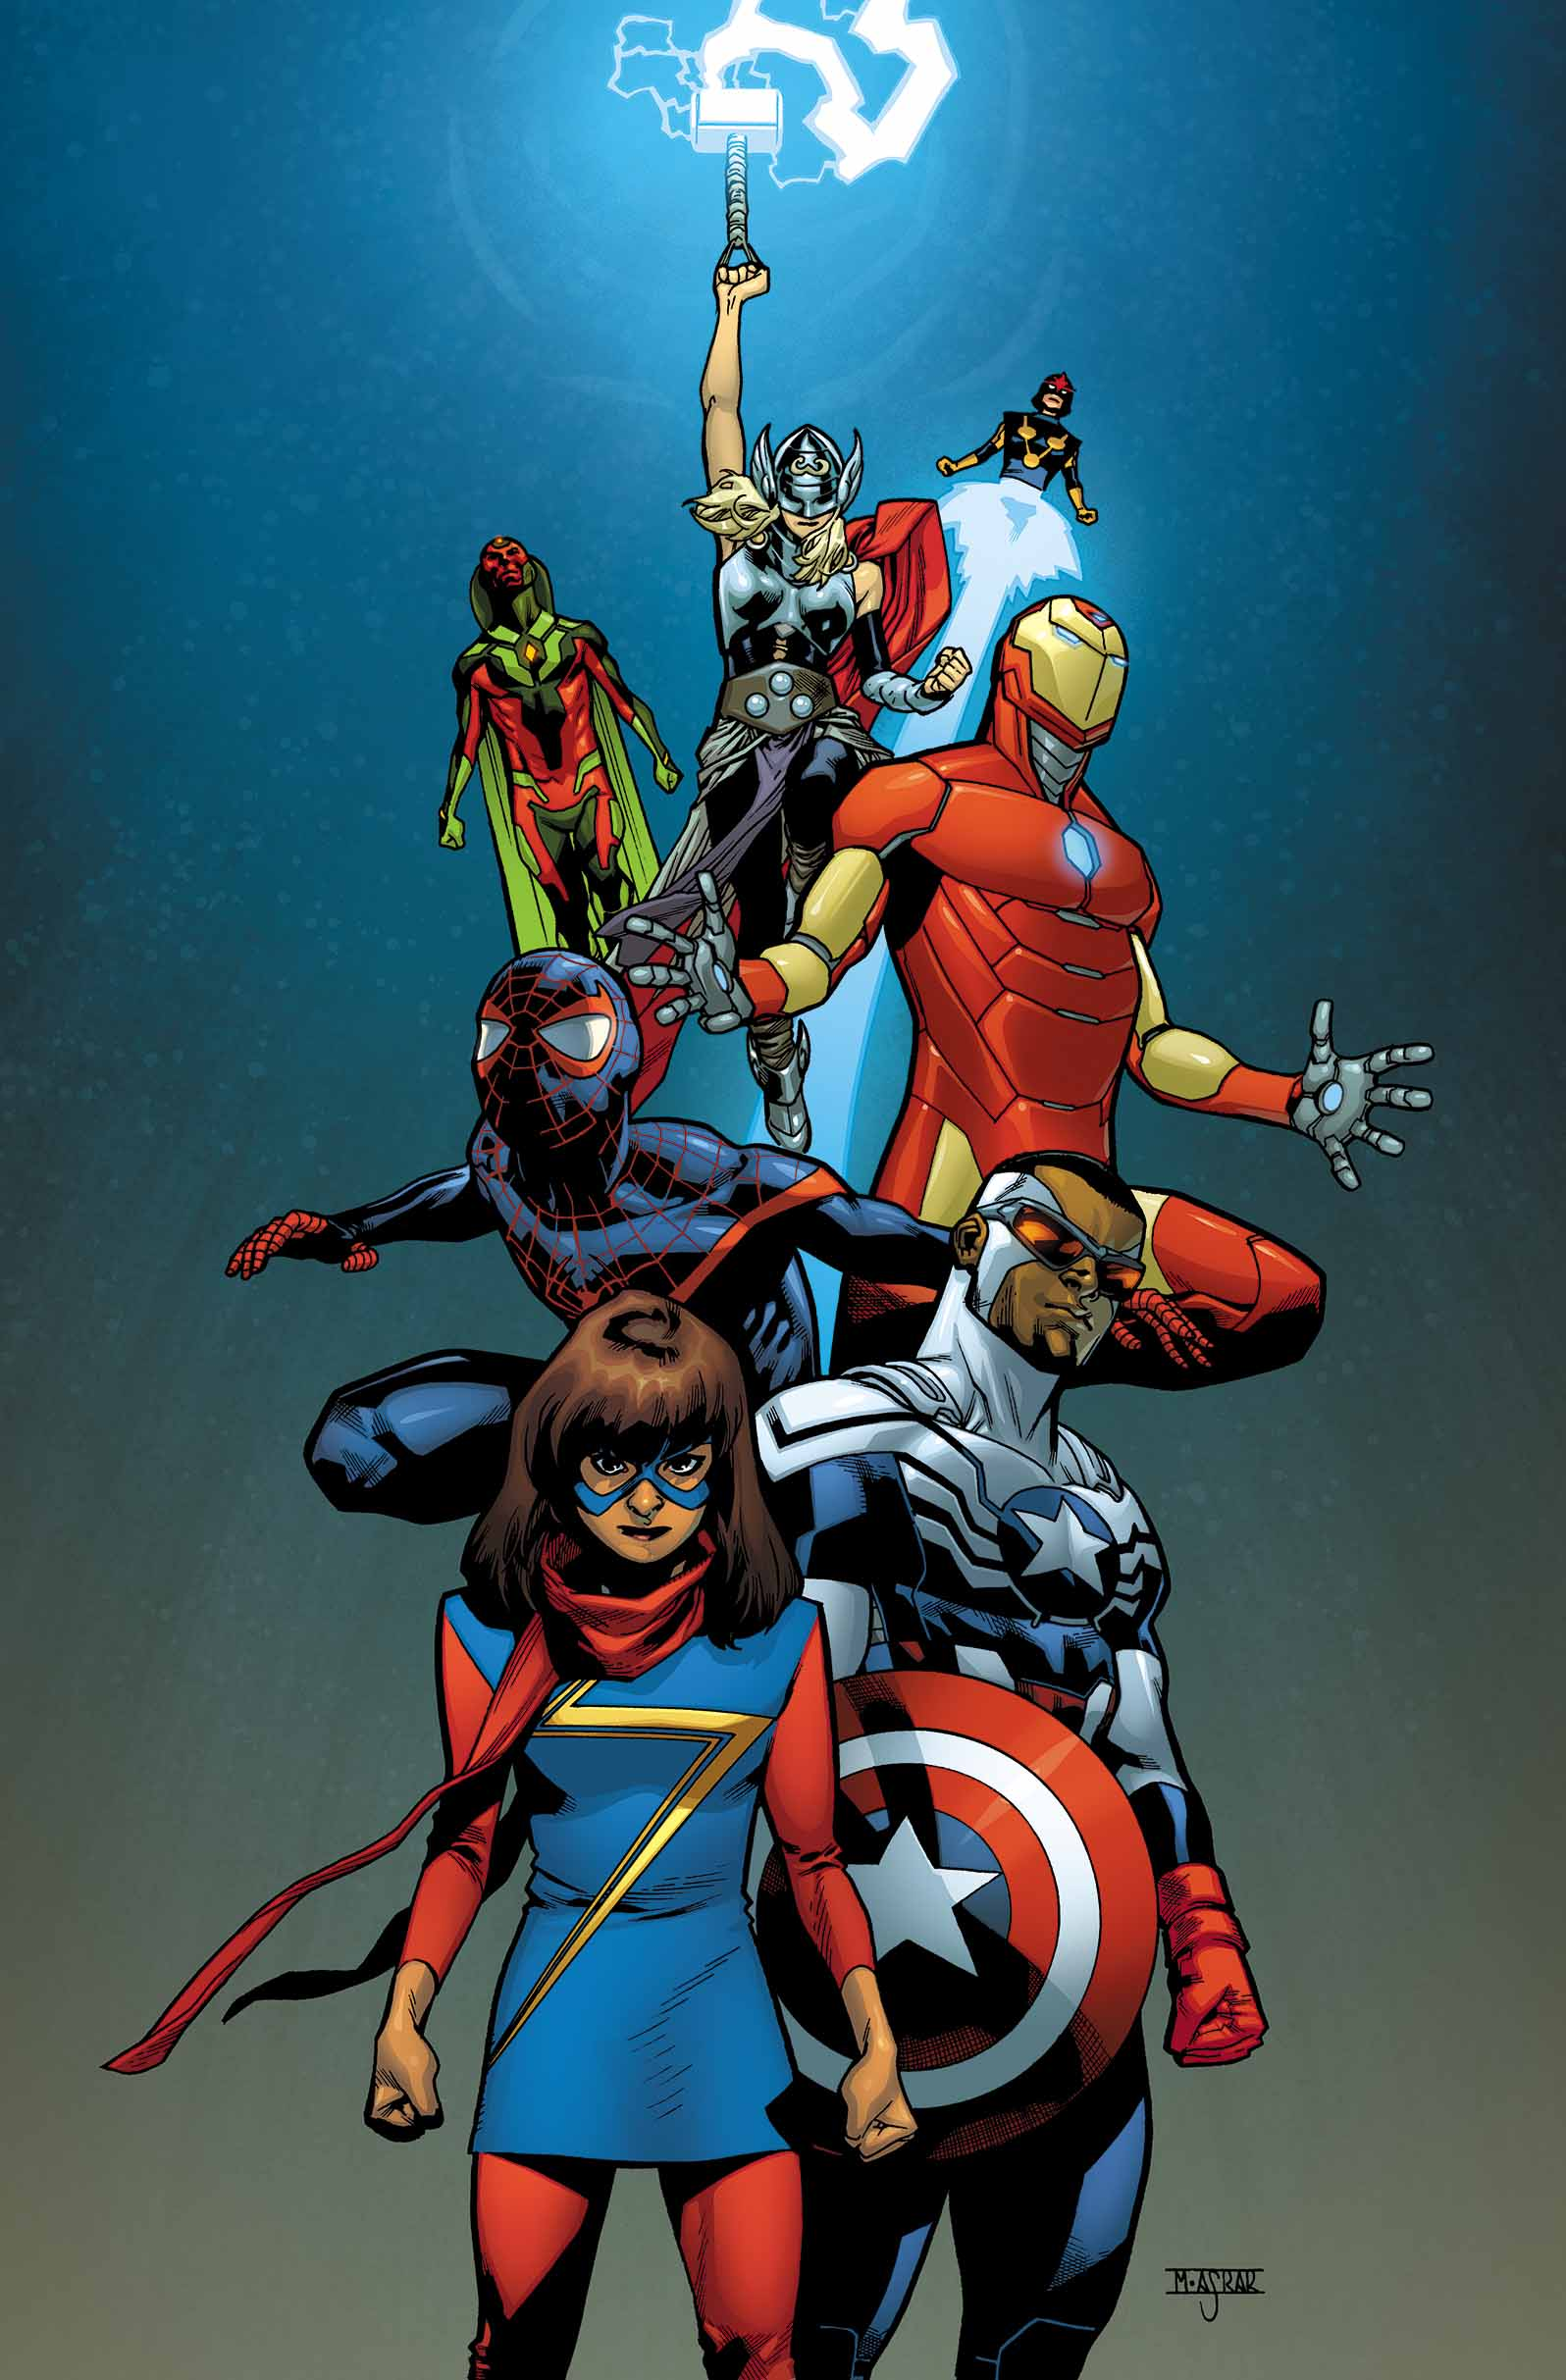 The Avengers: Meet The All-new, All-Different Avengers